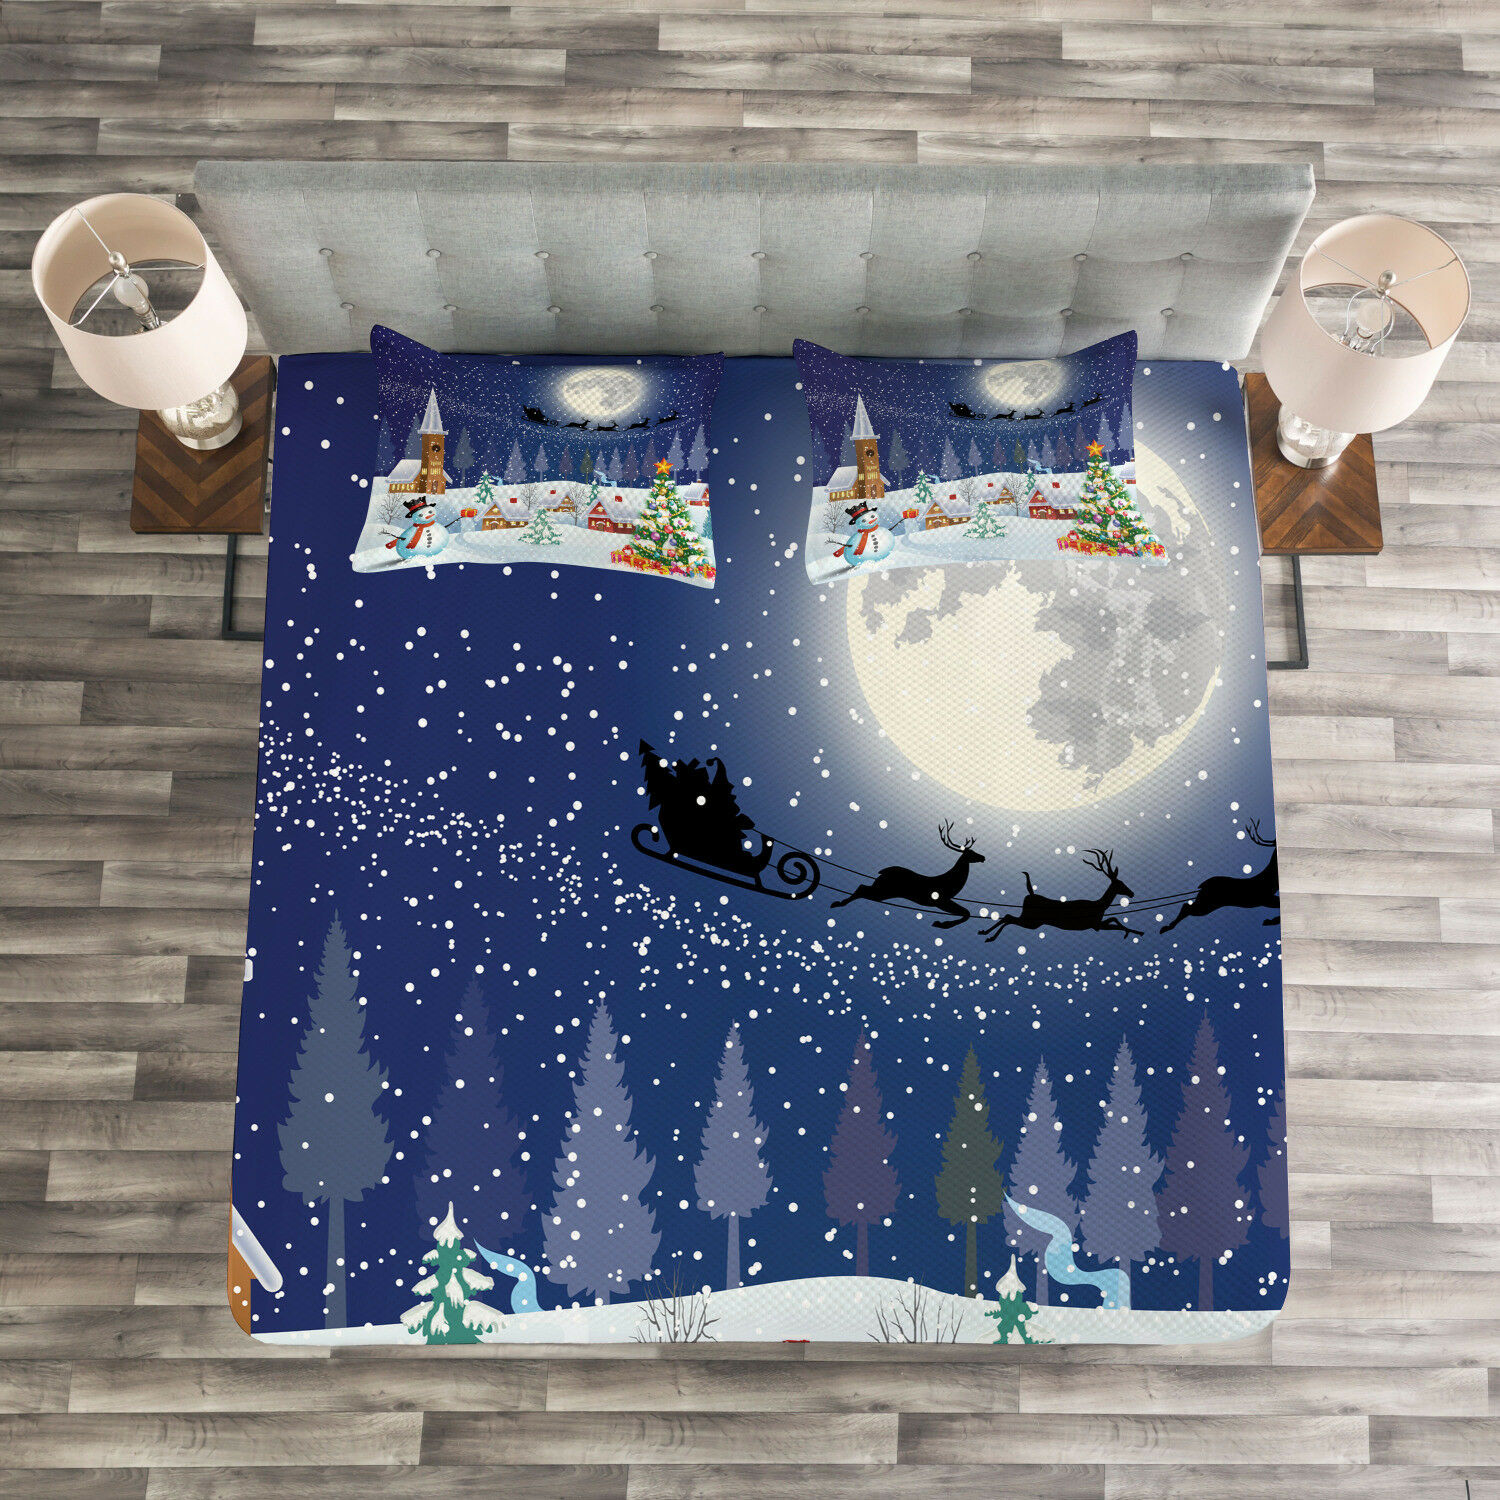 Christmas Quilted Bedspread & Pillow Shams Set, Winter Landscape Print